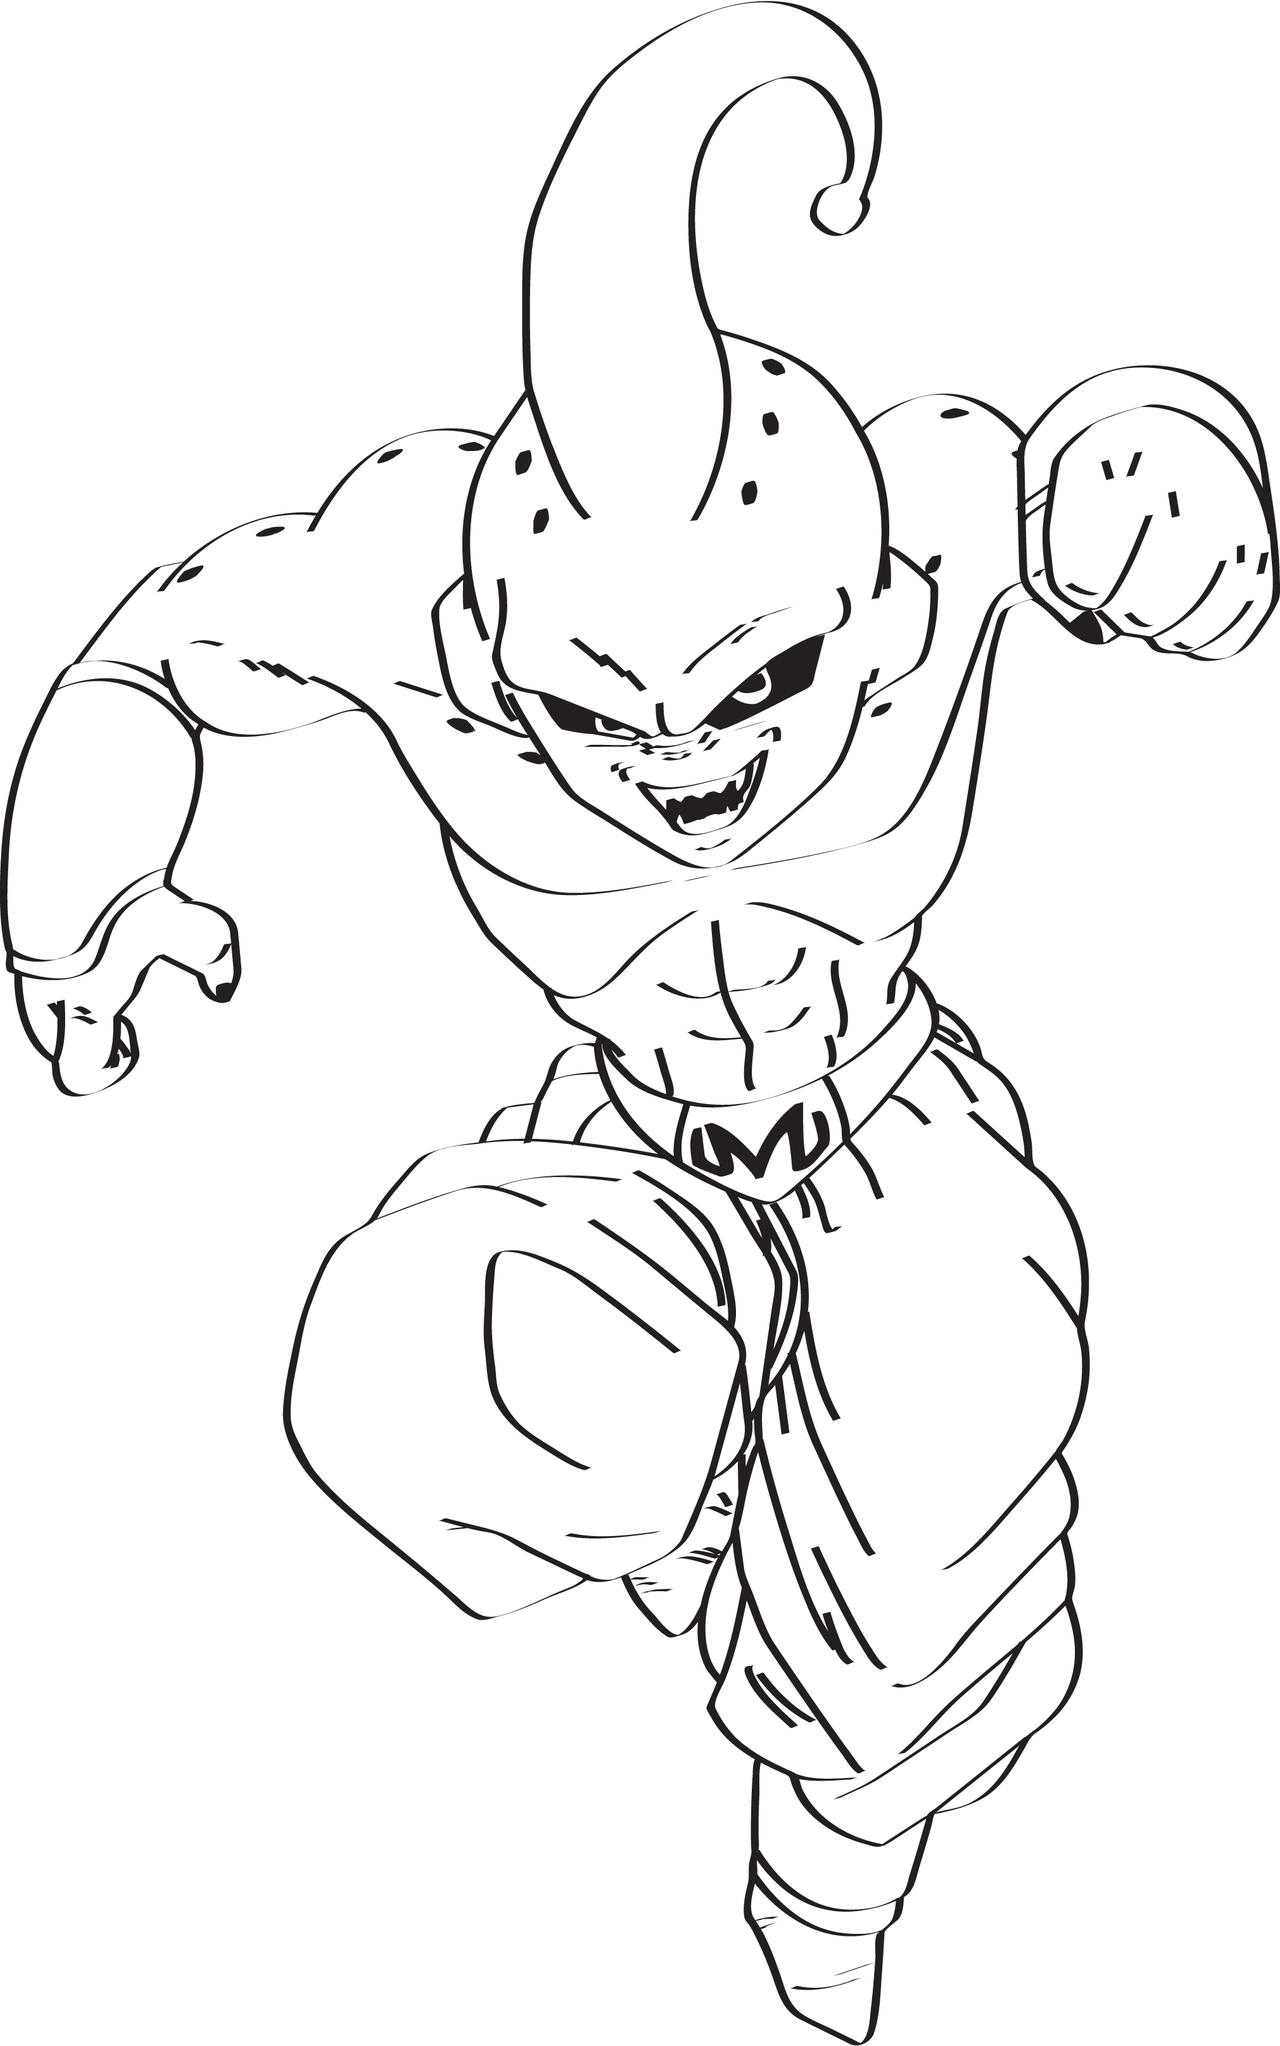 majin buu coloring pages - majin buu by palexanos on deviantart